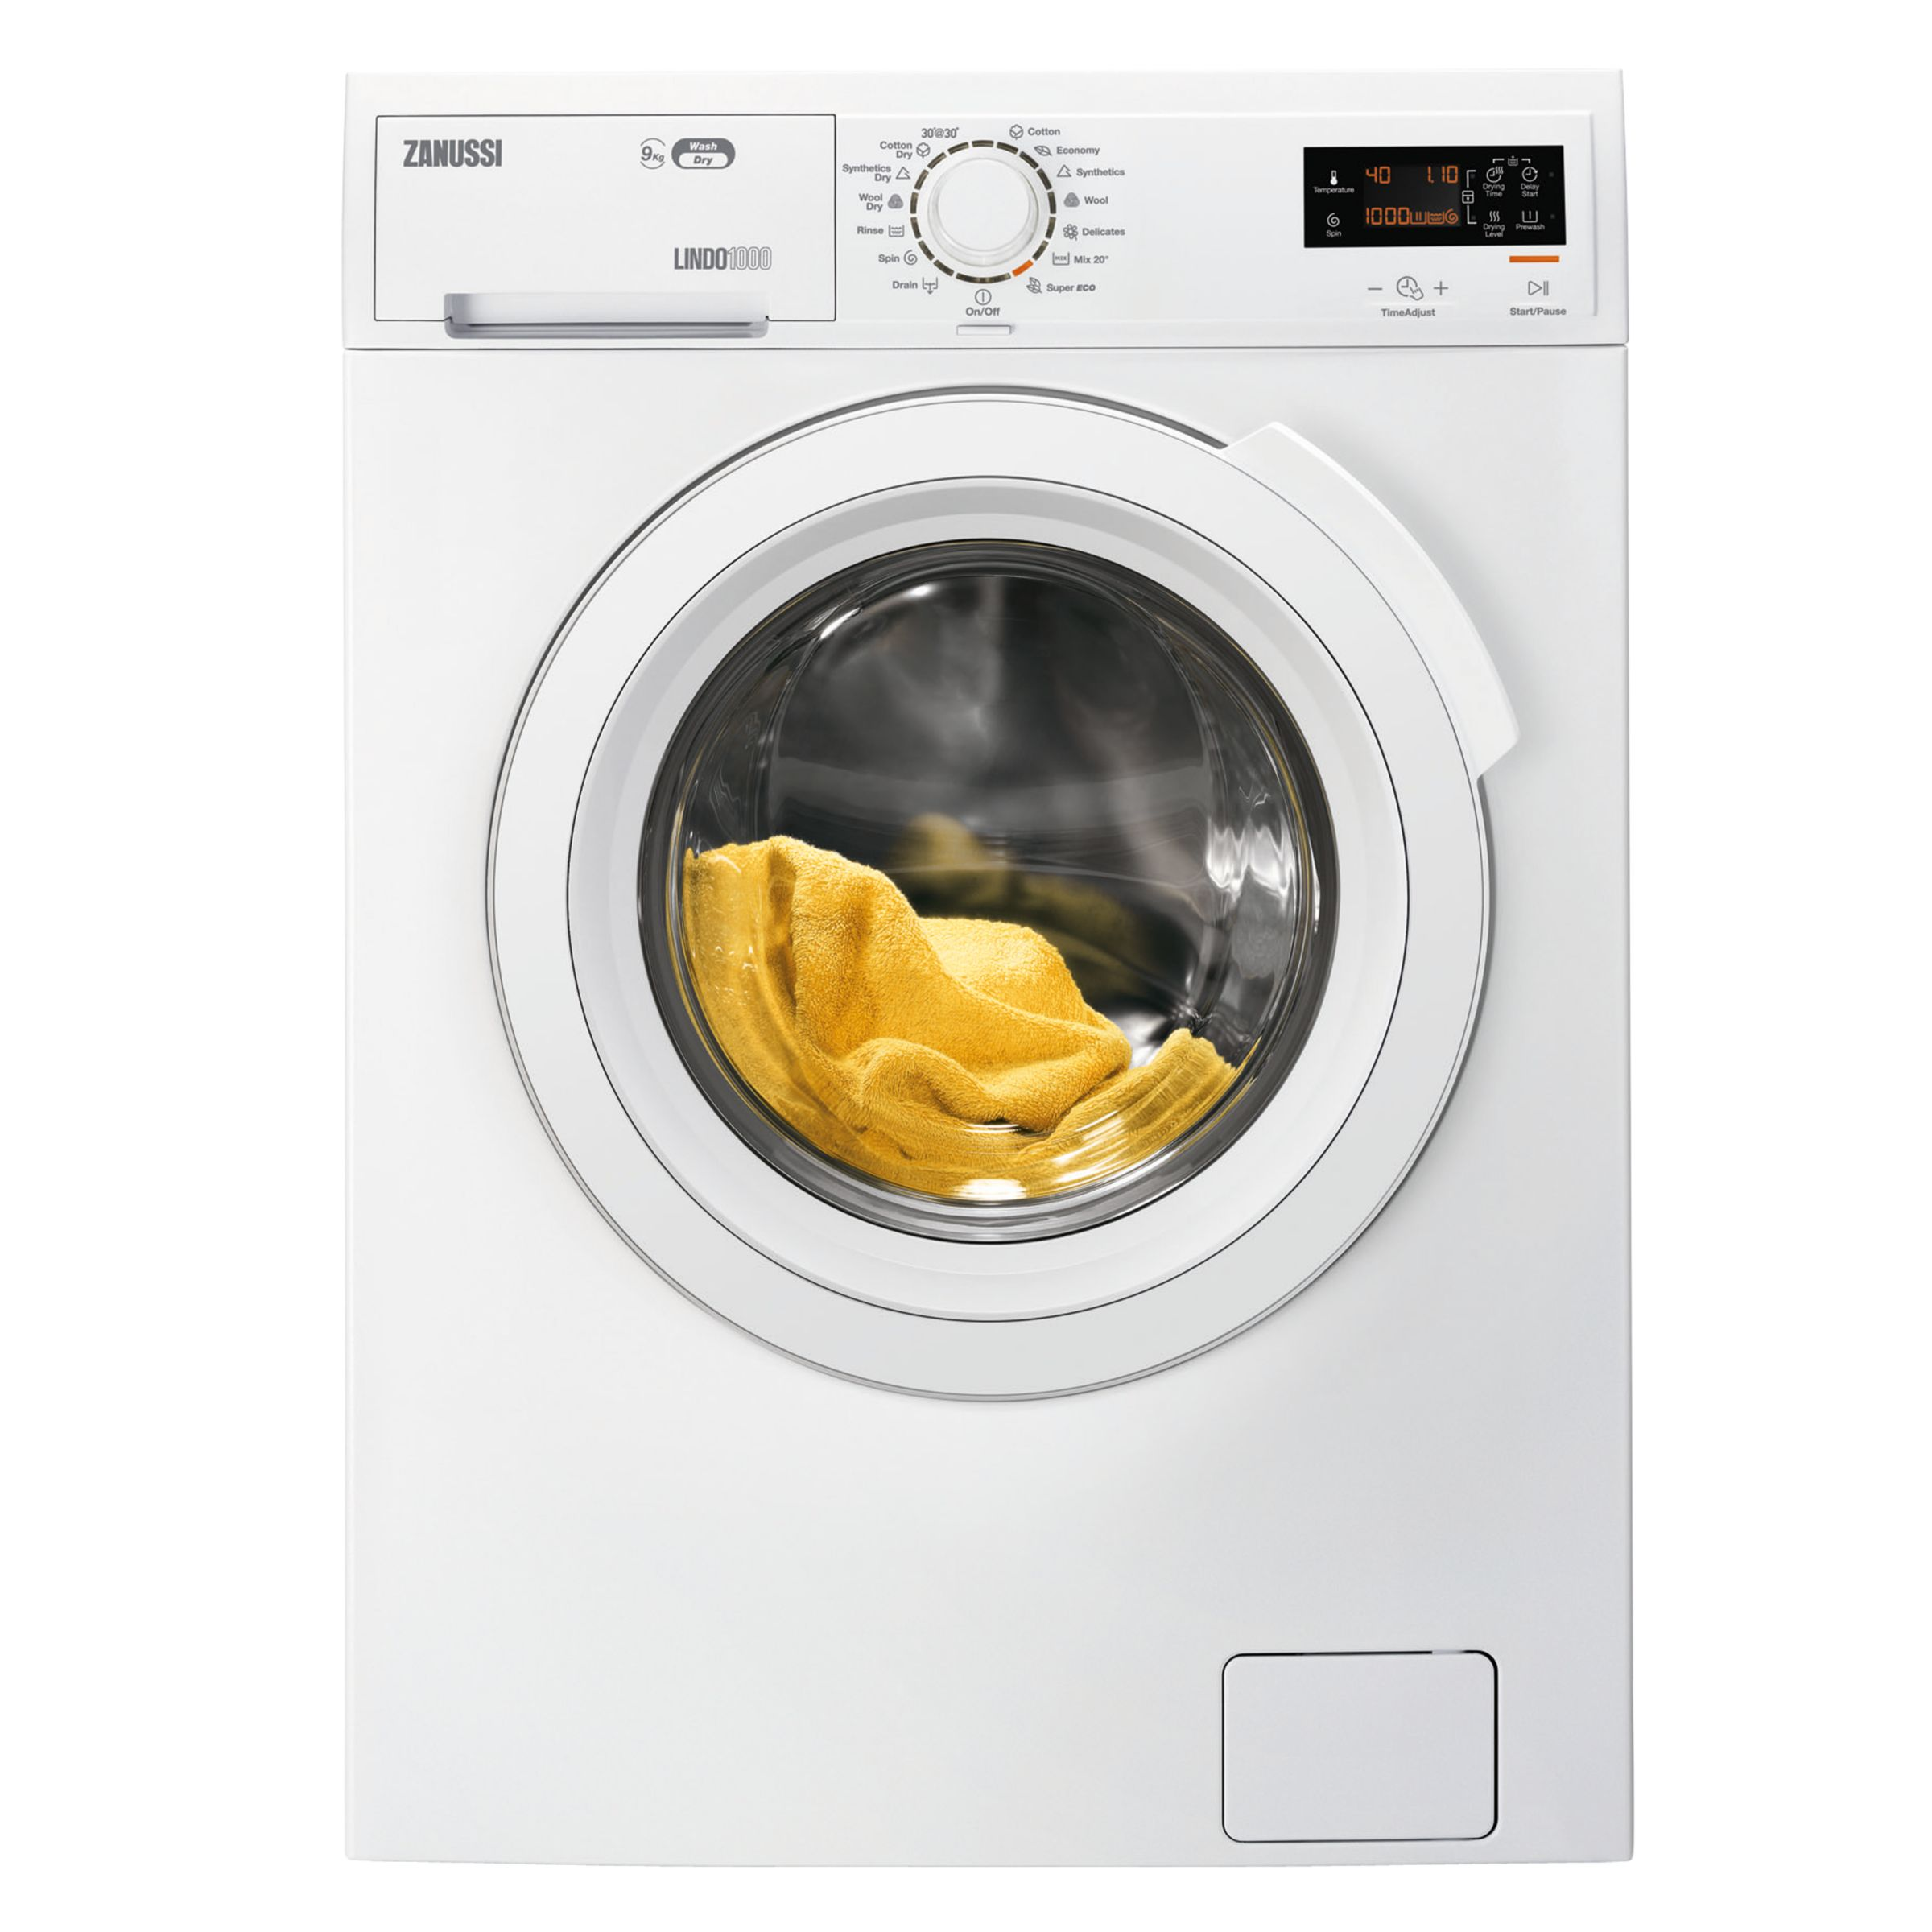 Zanussi Zanussi ZWD91683NW Freestanding Washer Dryer, 9kg Wash/6kg Dry Load, A Energy Rating, 1600rpm Spin, White